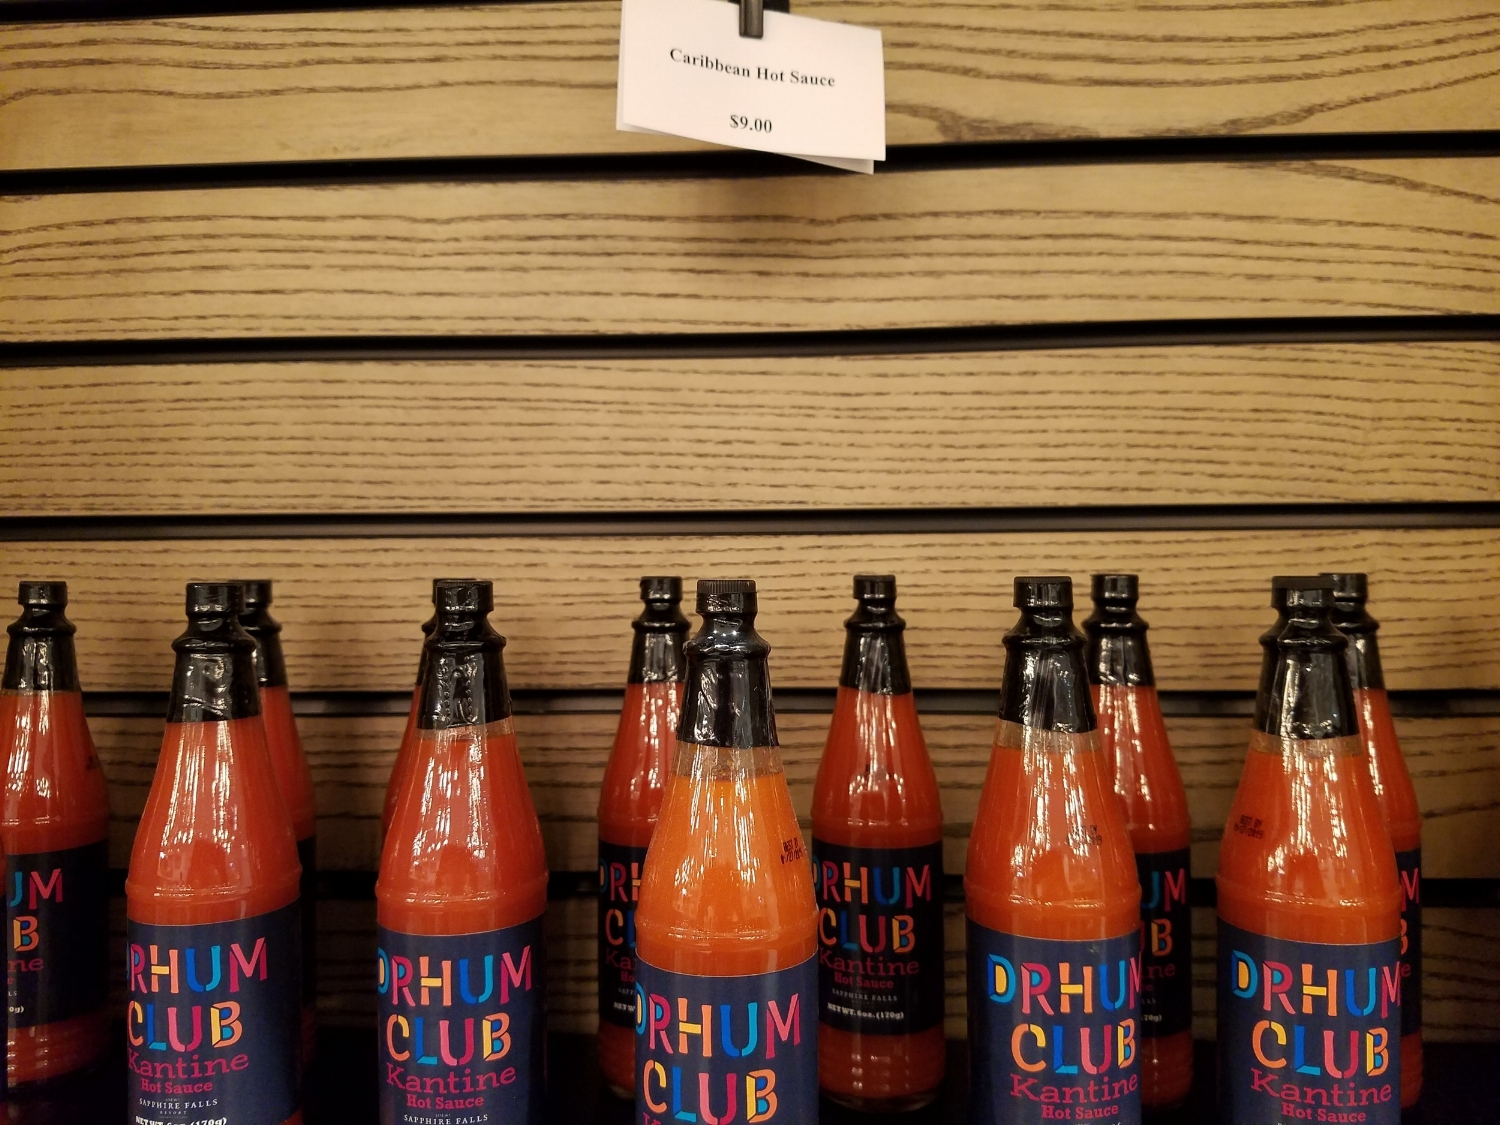 Take Home Some Drhum Club Kantine Hot Sauce From New Dutch Trading Co.